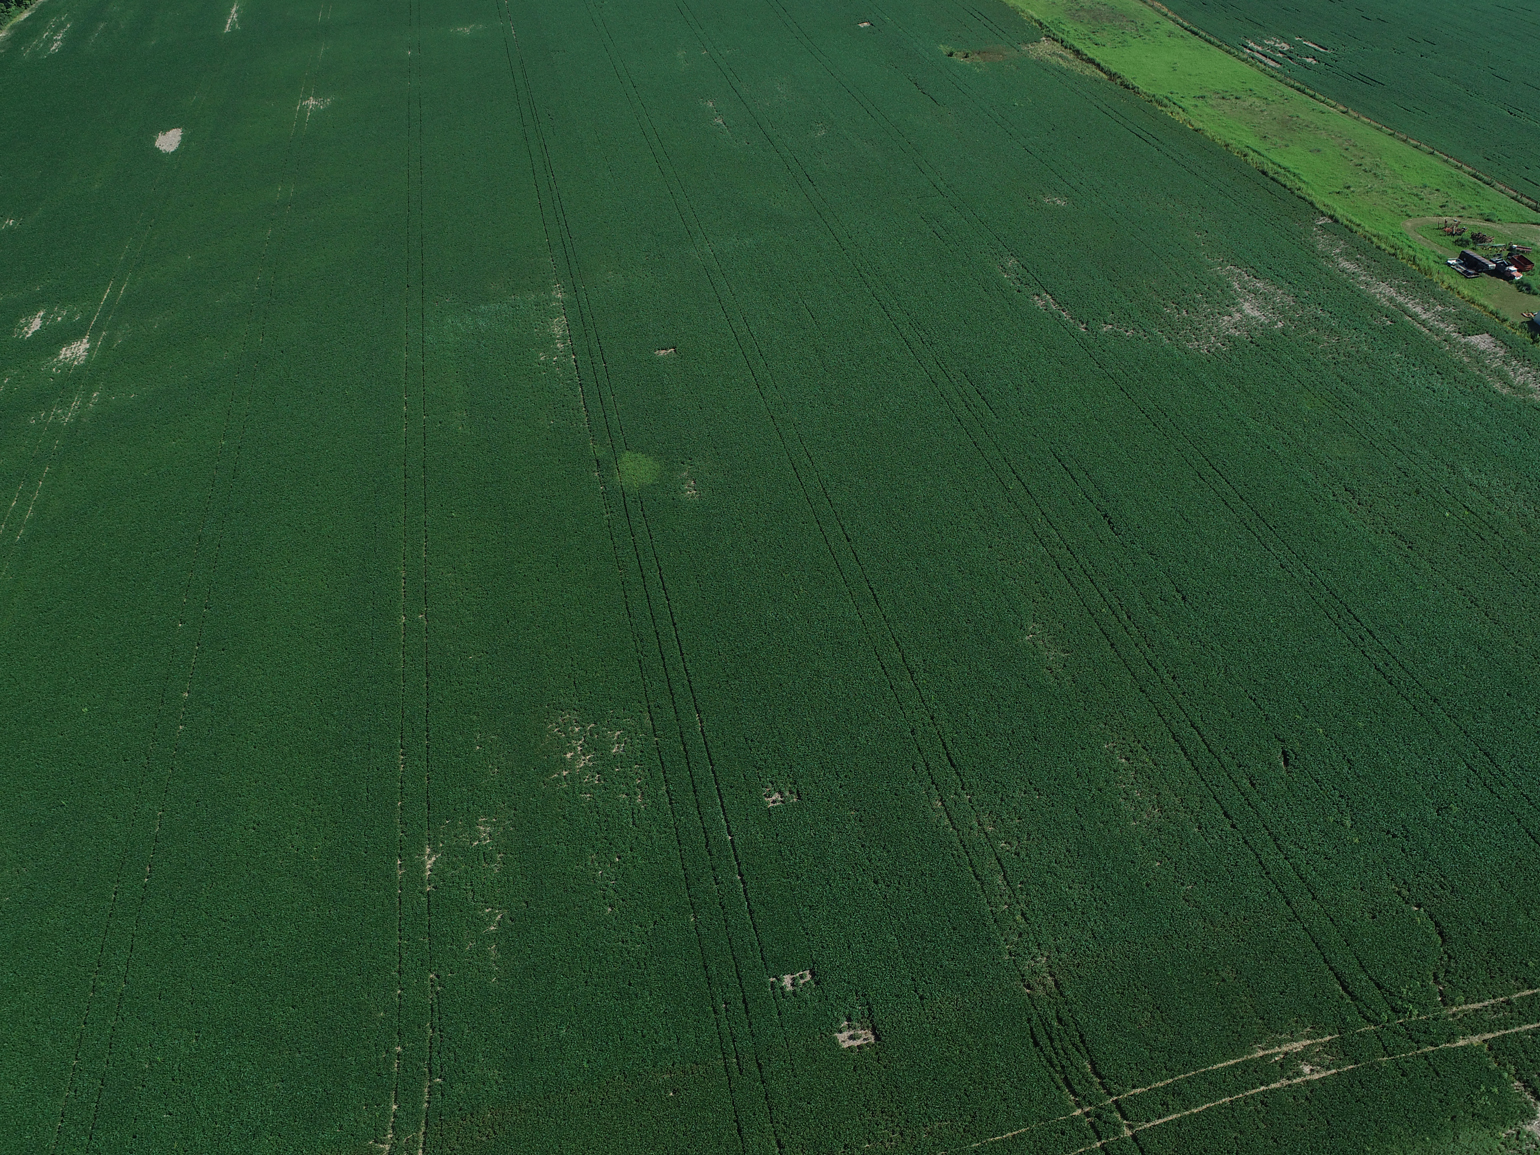 drone photo of thistles growing in soybean field